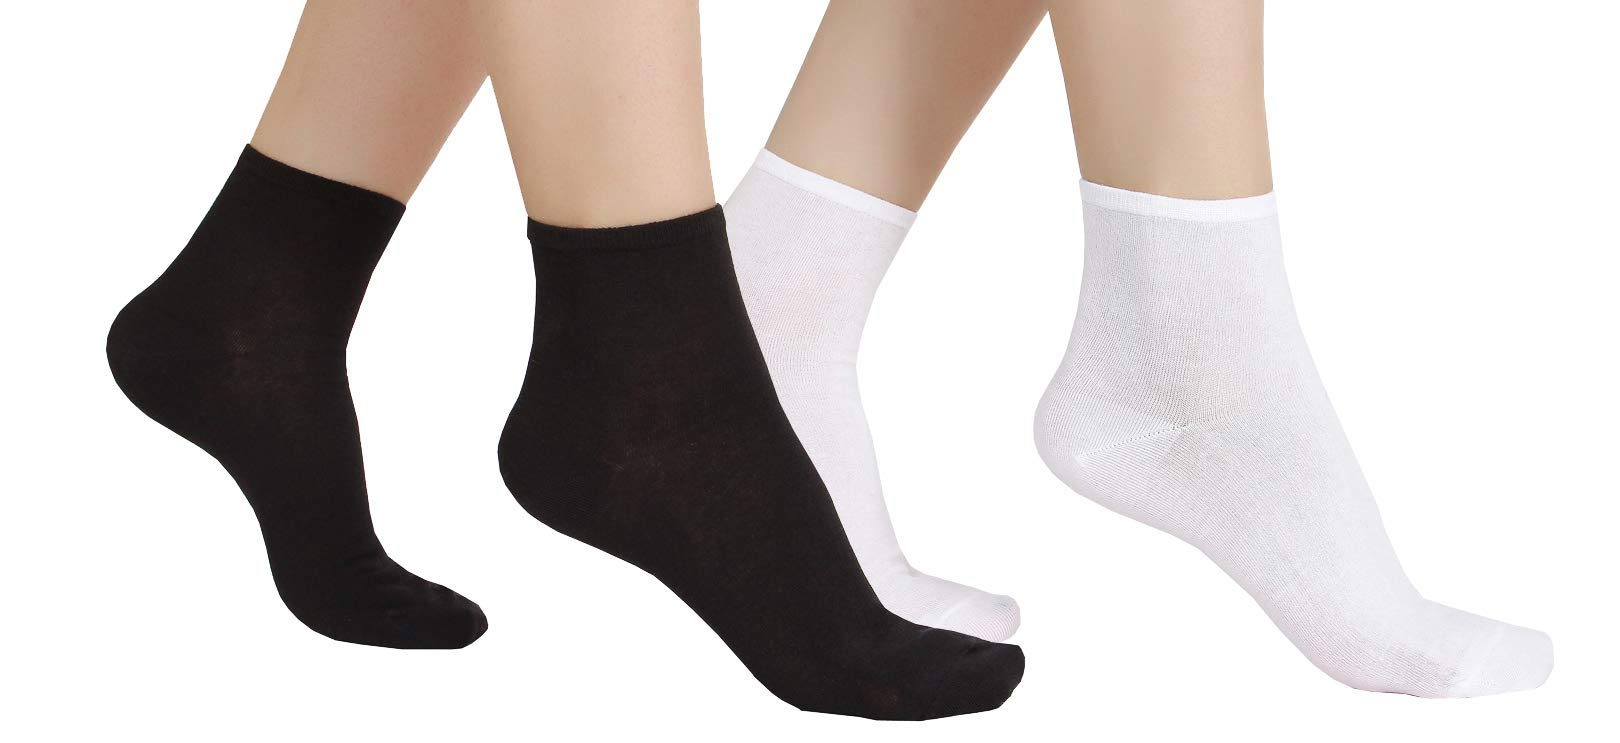 12 Pair Women's Ultra Thin Cotton Summer Ankle Crew Socks-A-S